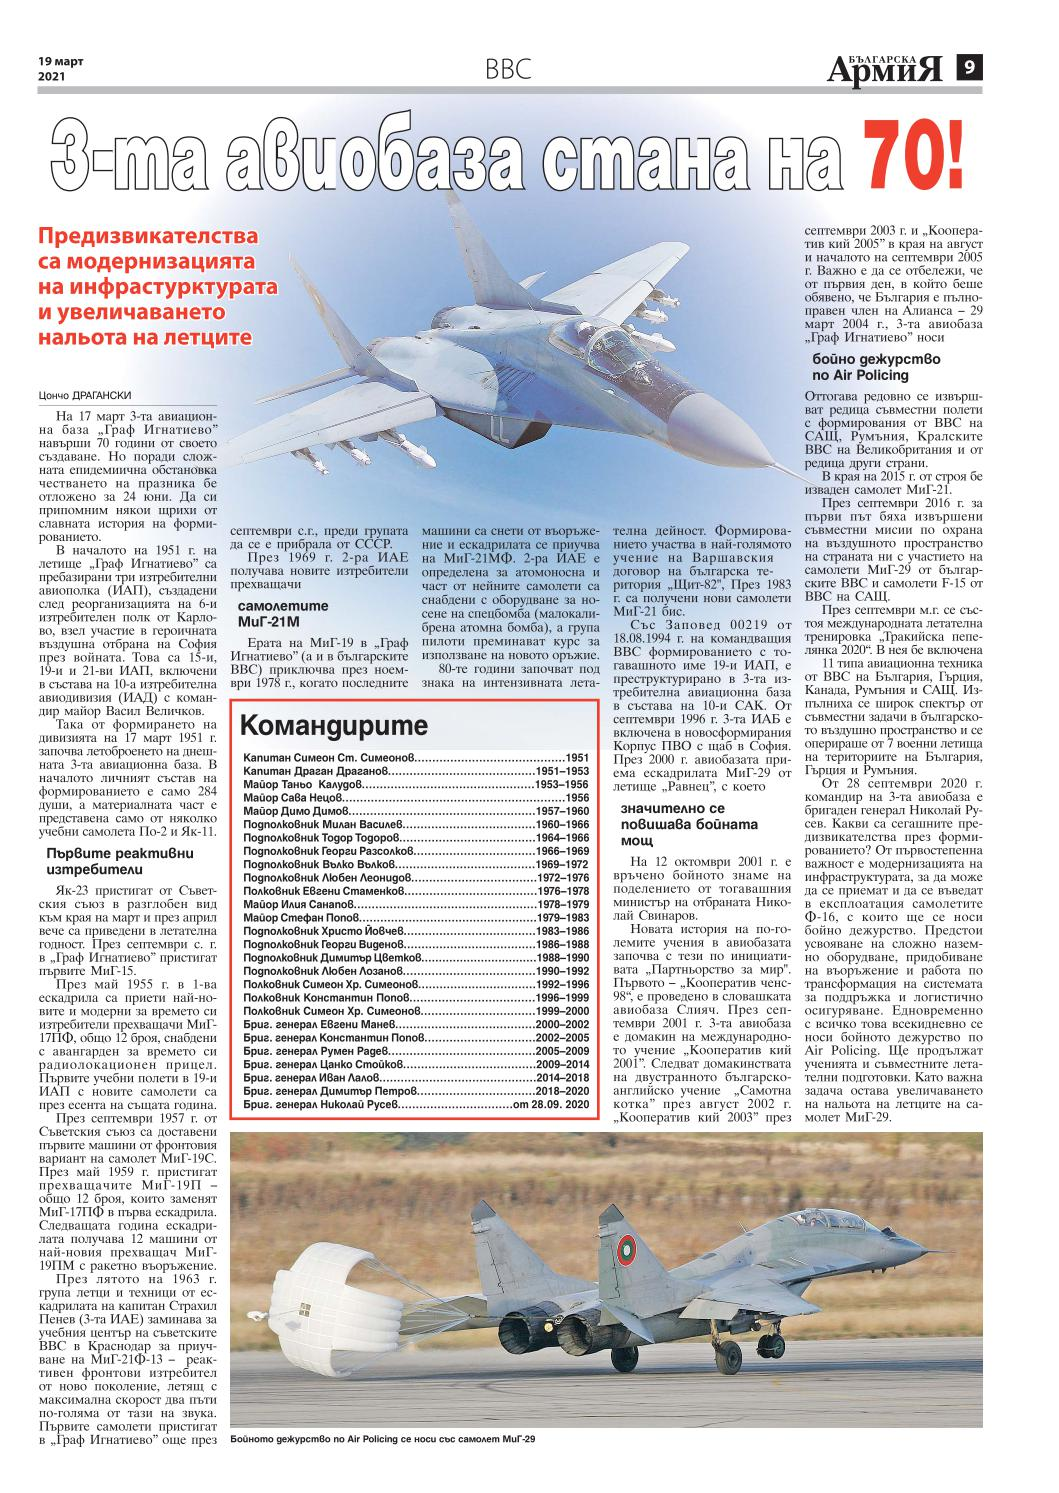 https://armymedia.bg/wp-content/uploads/2021/04/09.page1_-153.jpg